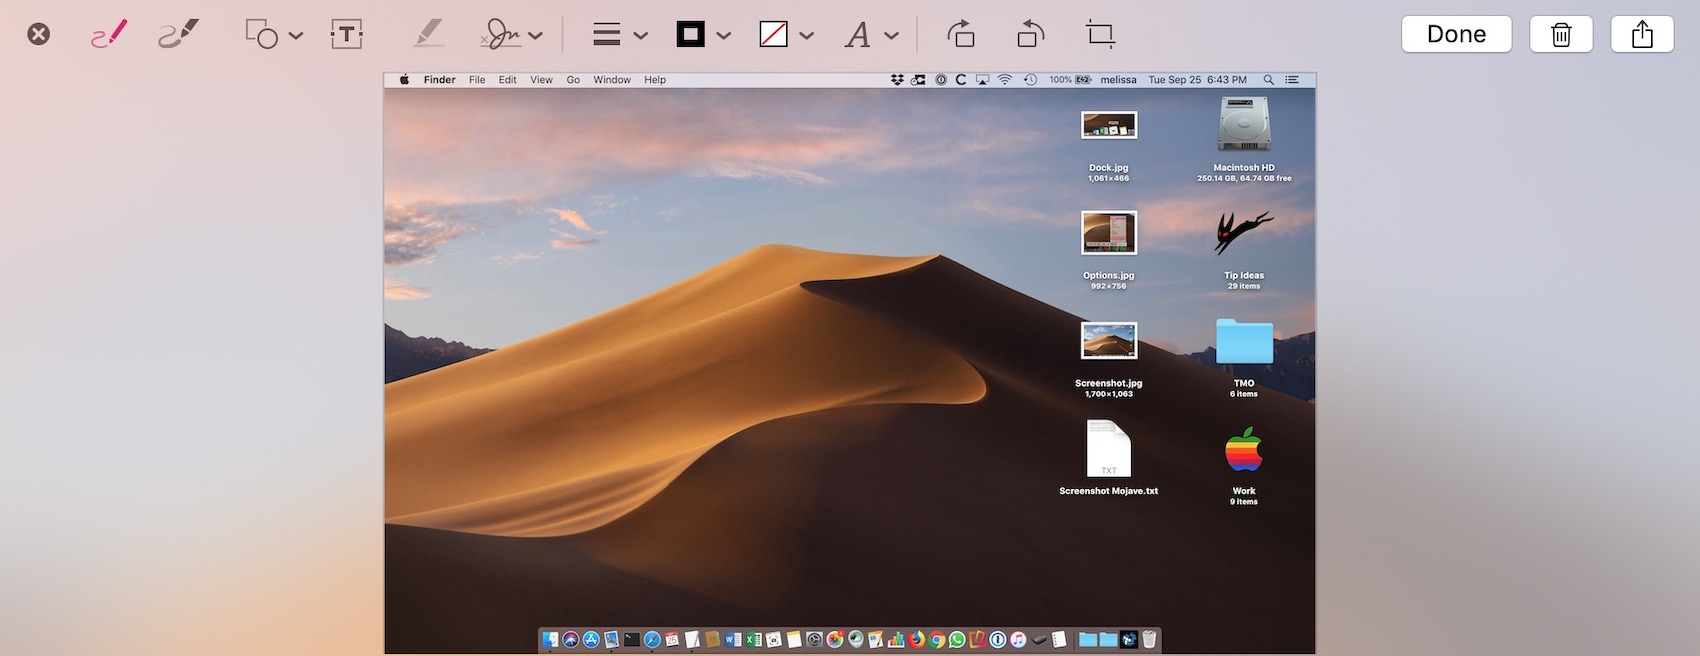 Markup Toolbar for Screenshots in macOS Mojave